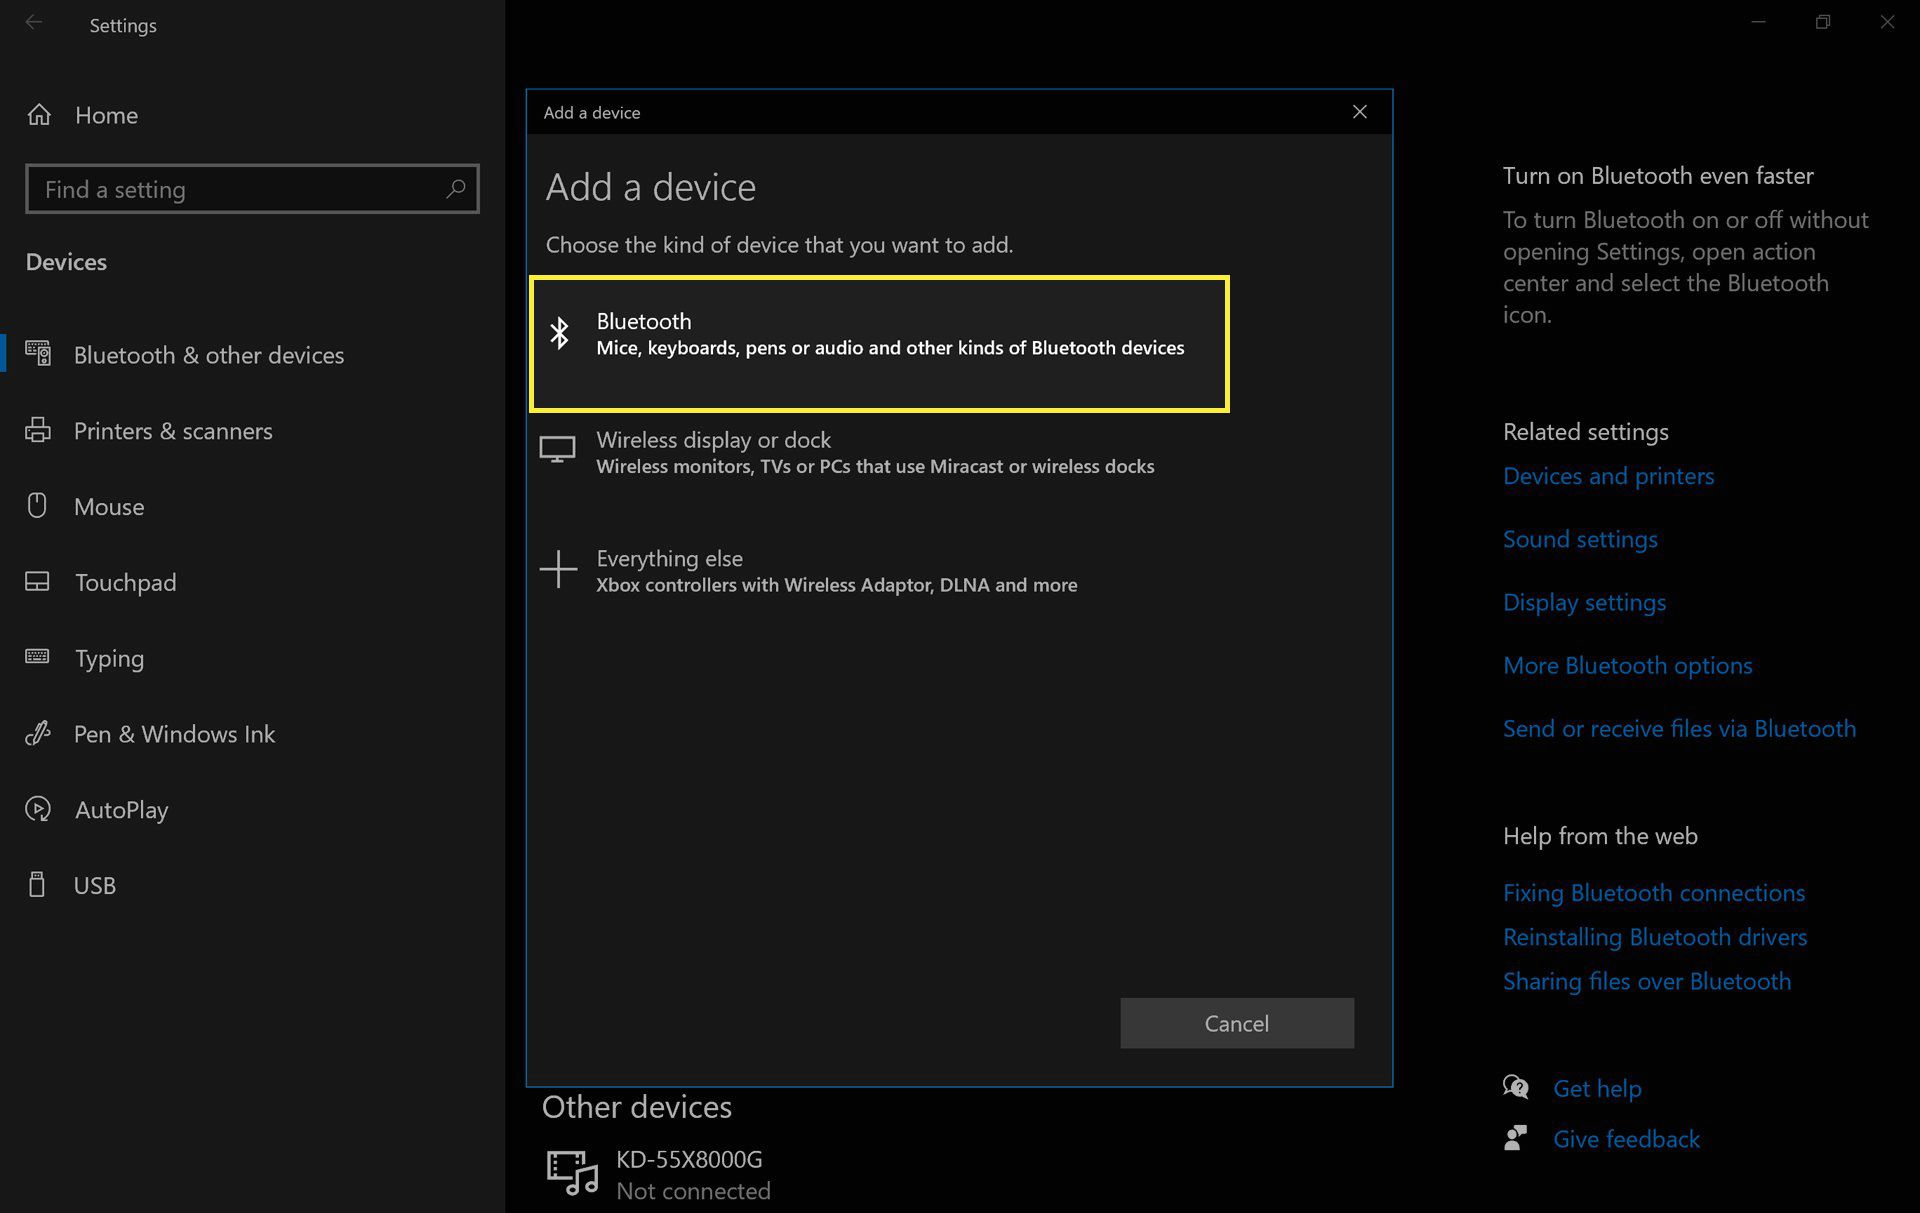 Bluetooth device settings in Windows 10 with Bluetooth highlighted